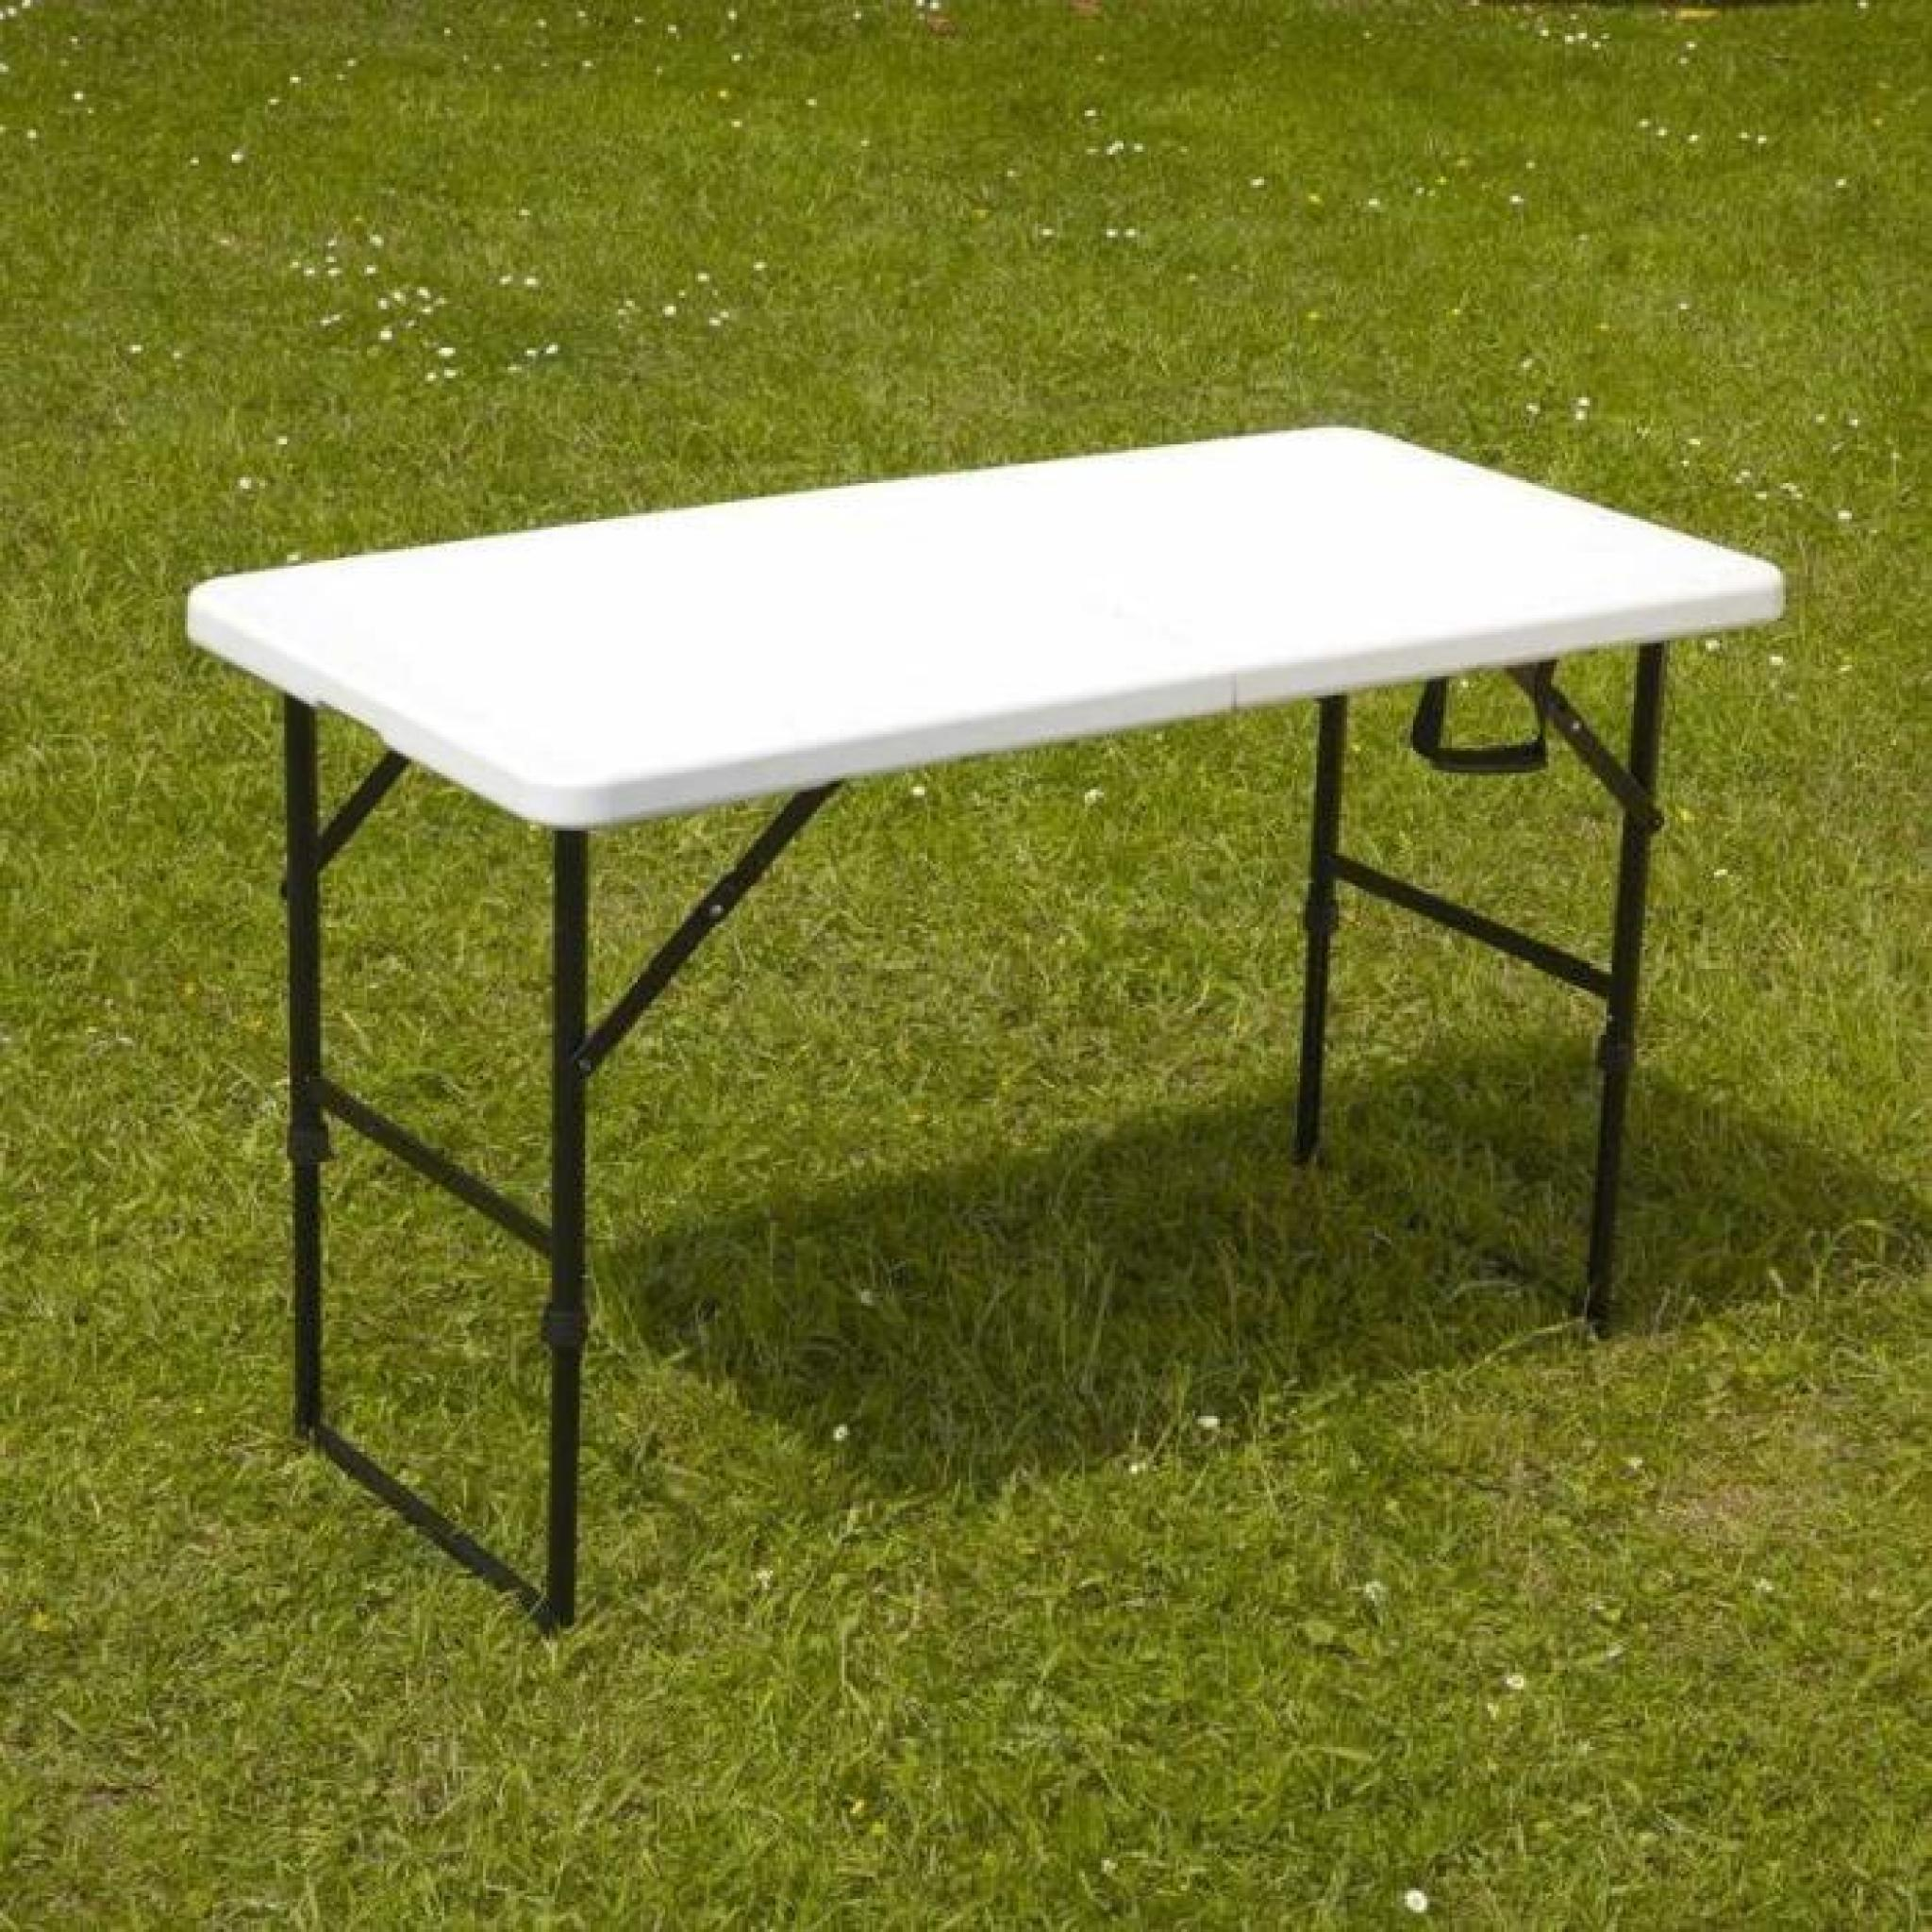 Table Pliante Pas Cher Castorama Table Pliante Portable Camping 122 Cm Achat Vente Table